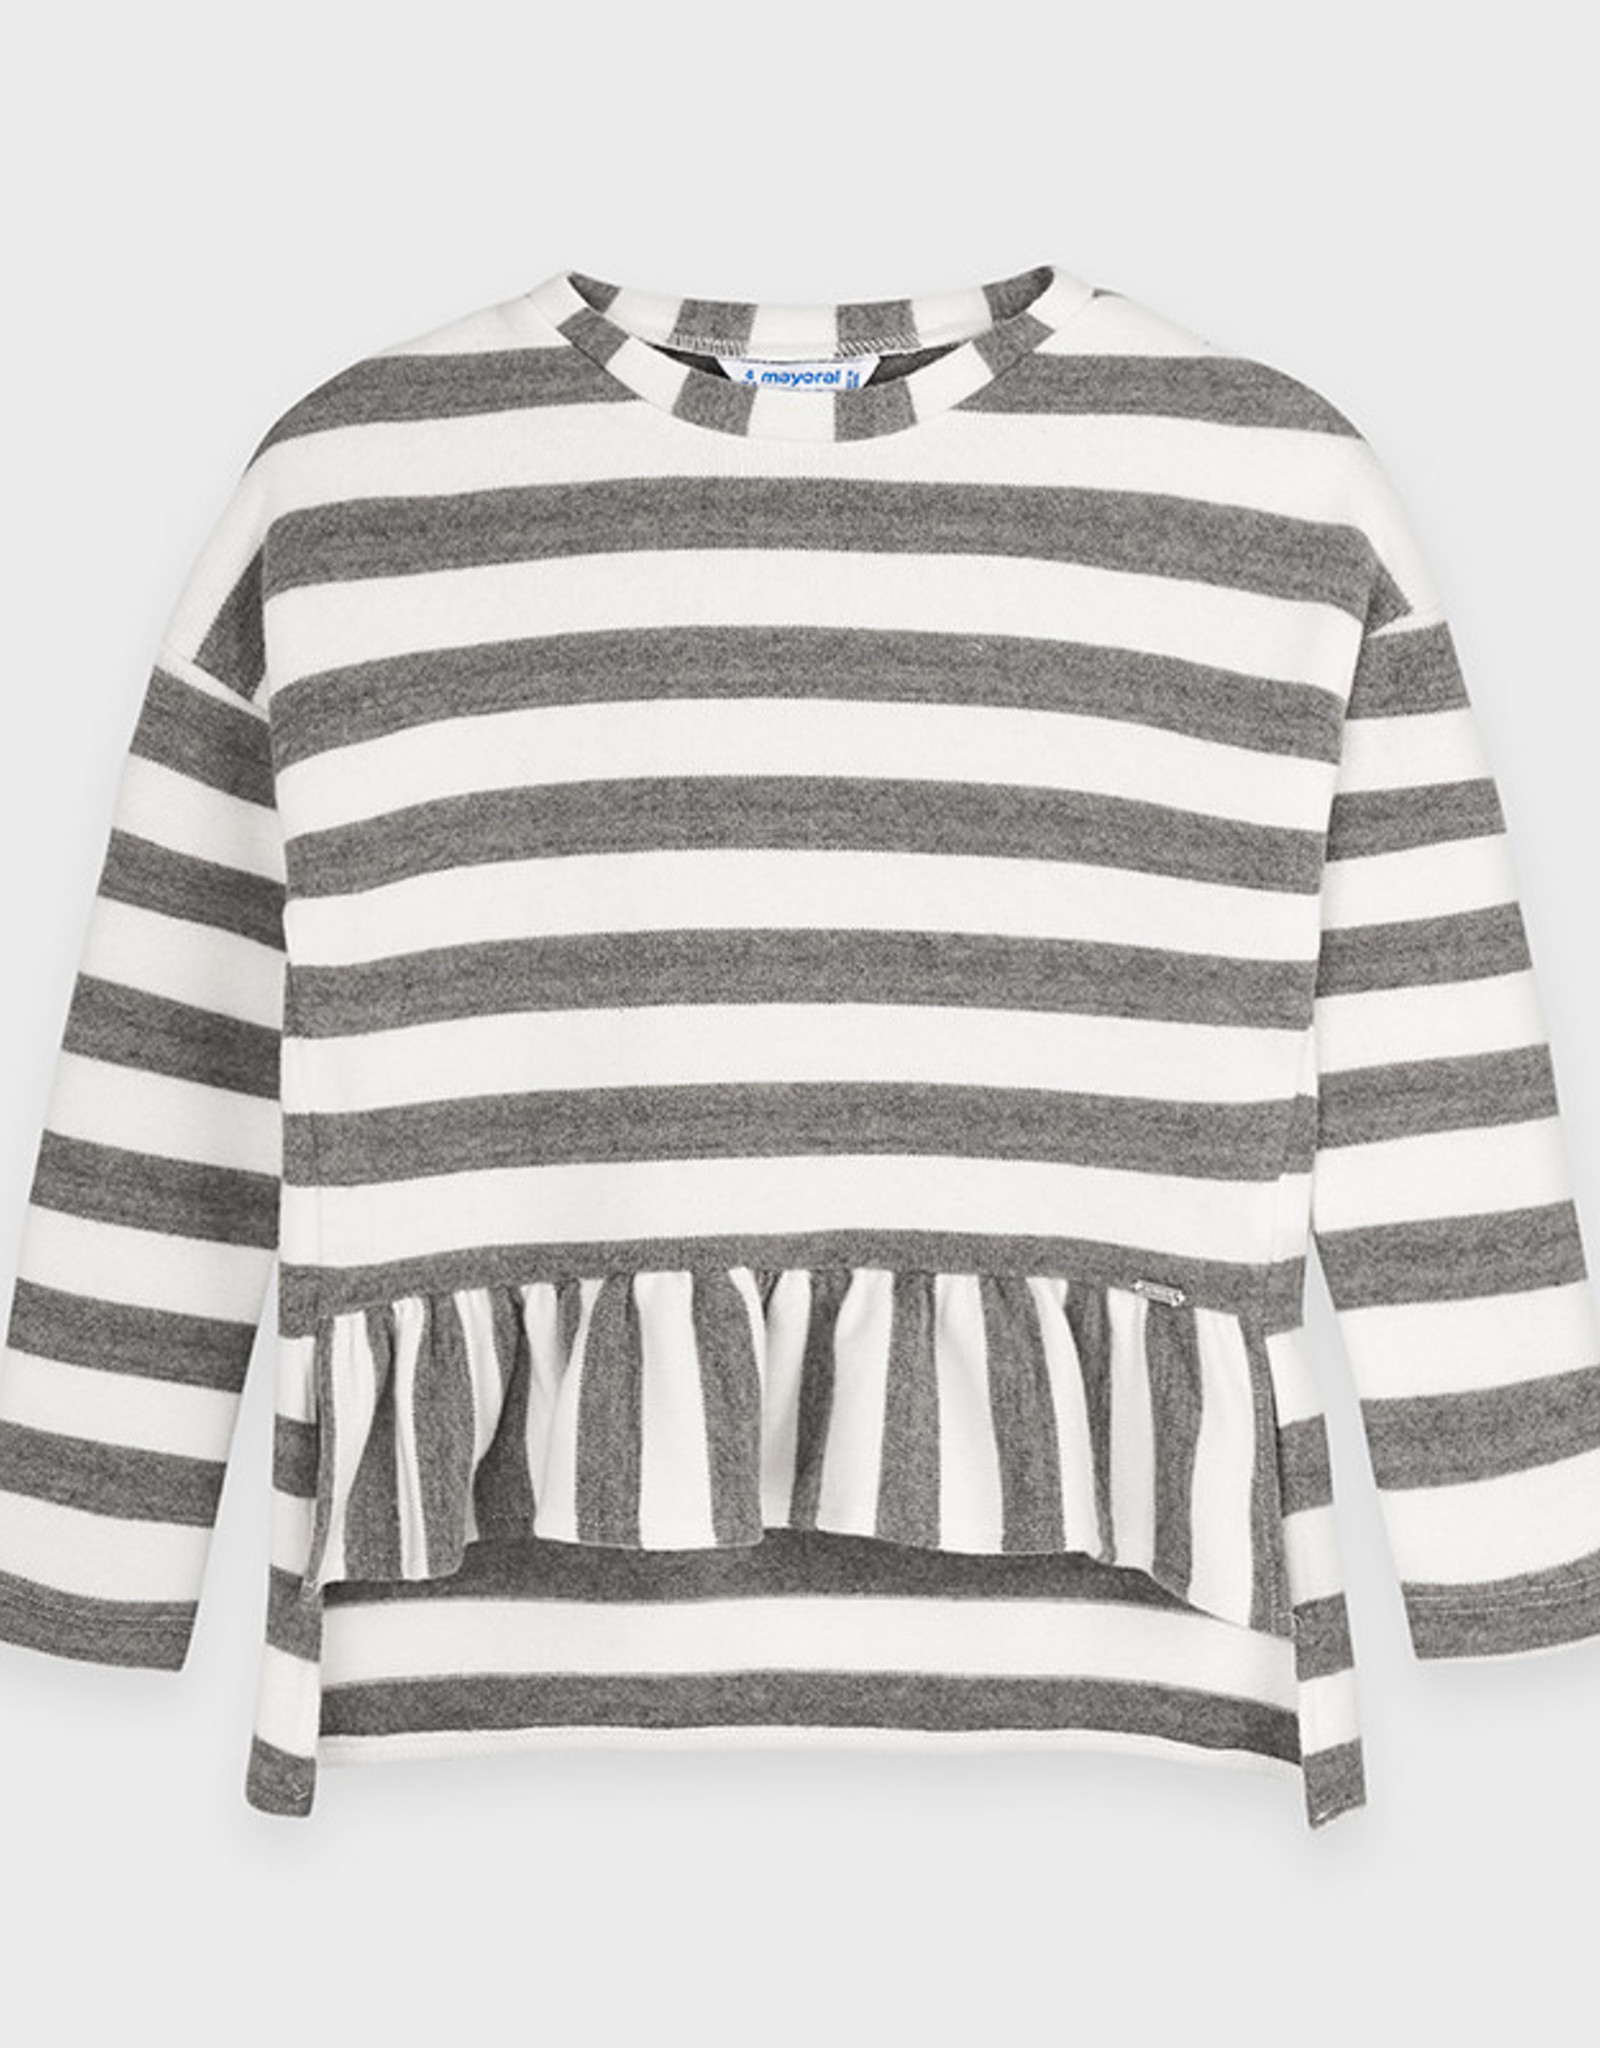 Mayoral Grey And White Stripped Flare Sweater